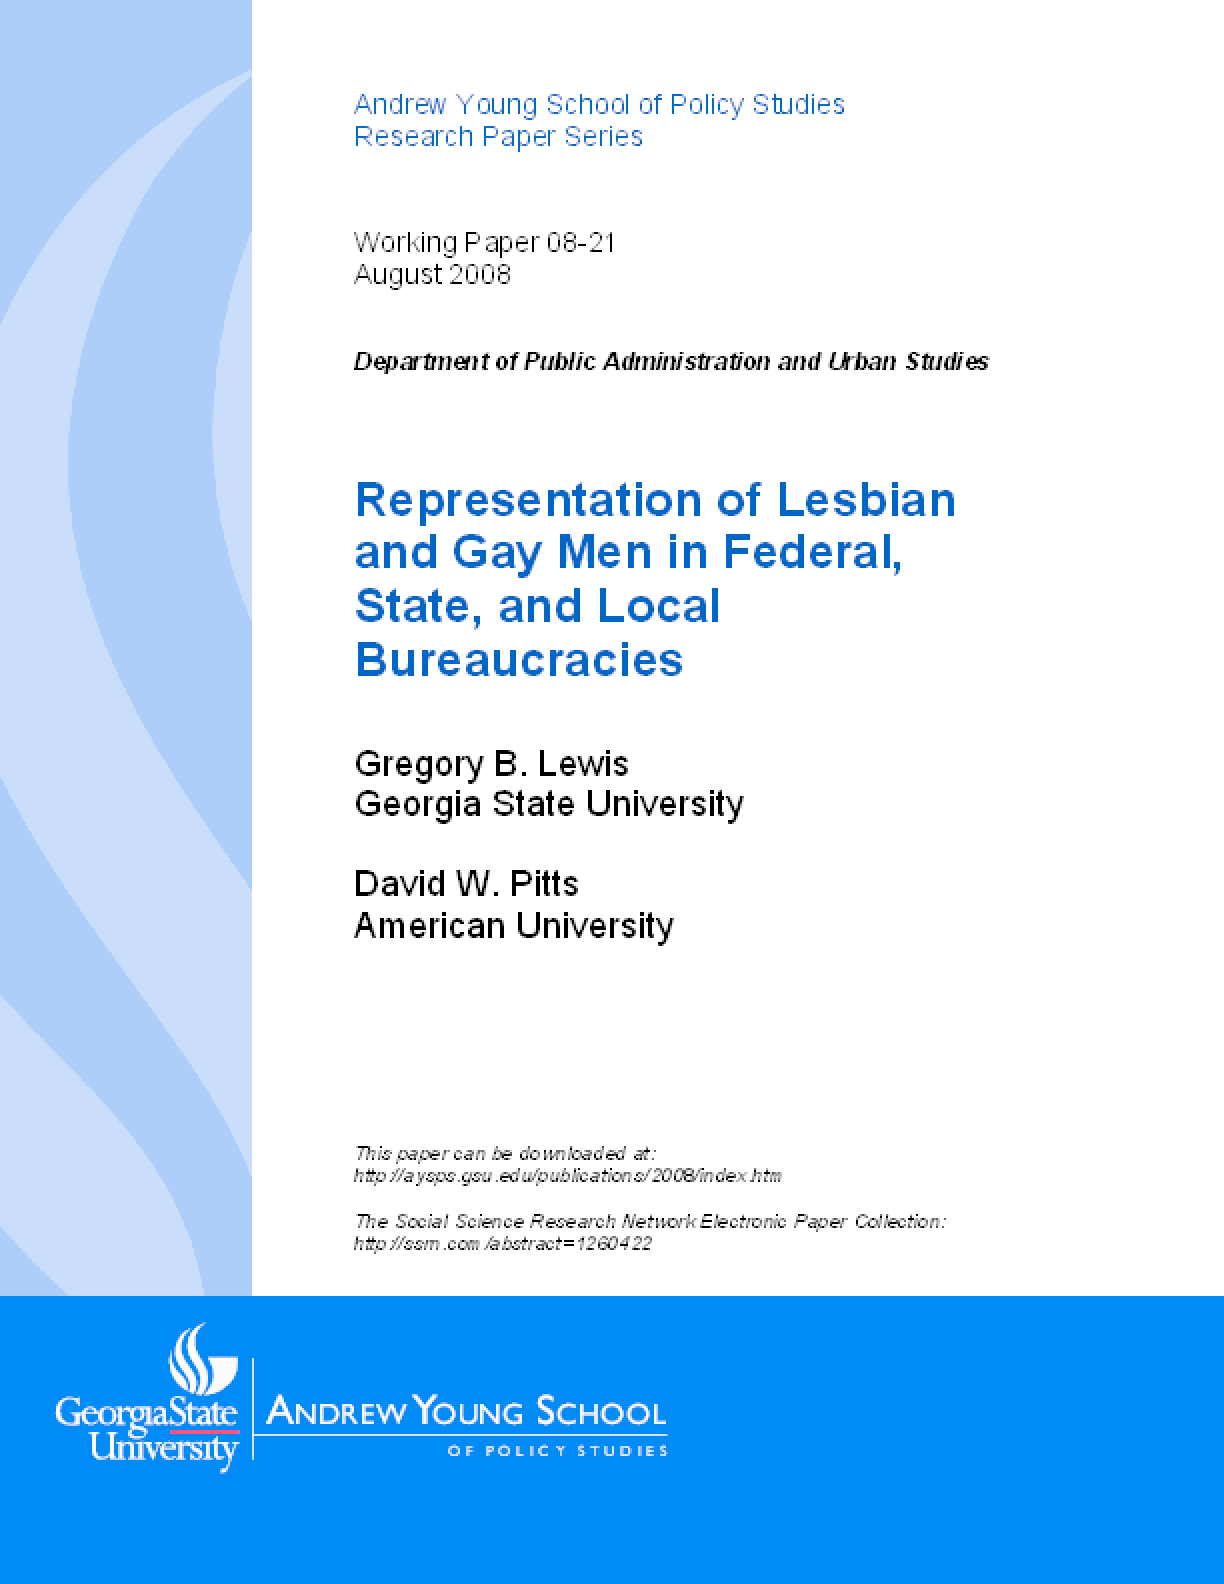 Representation of Lesbian and Gay Men in Federal, State, and Local Bureaucracies